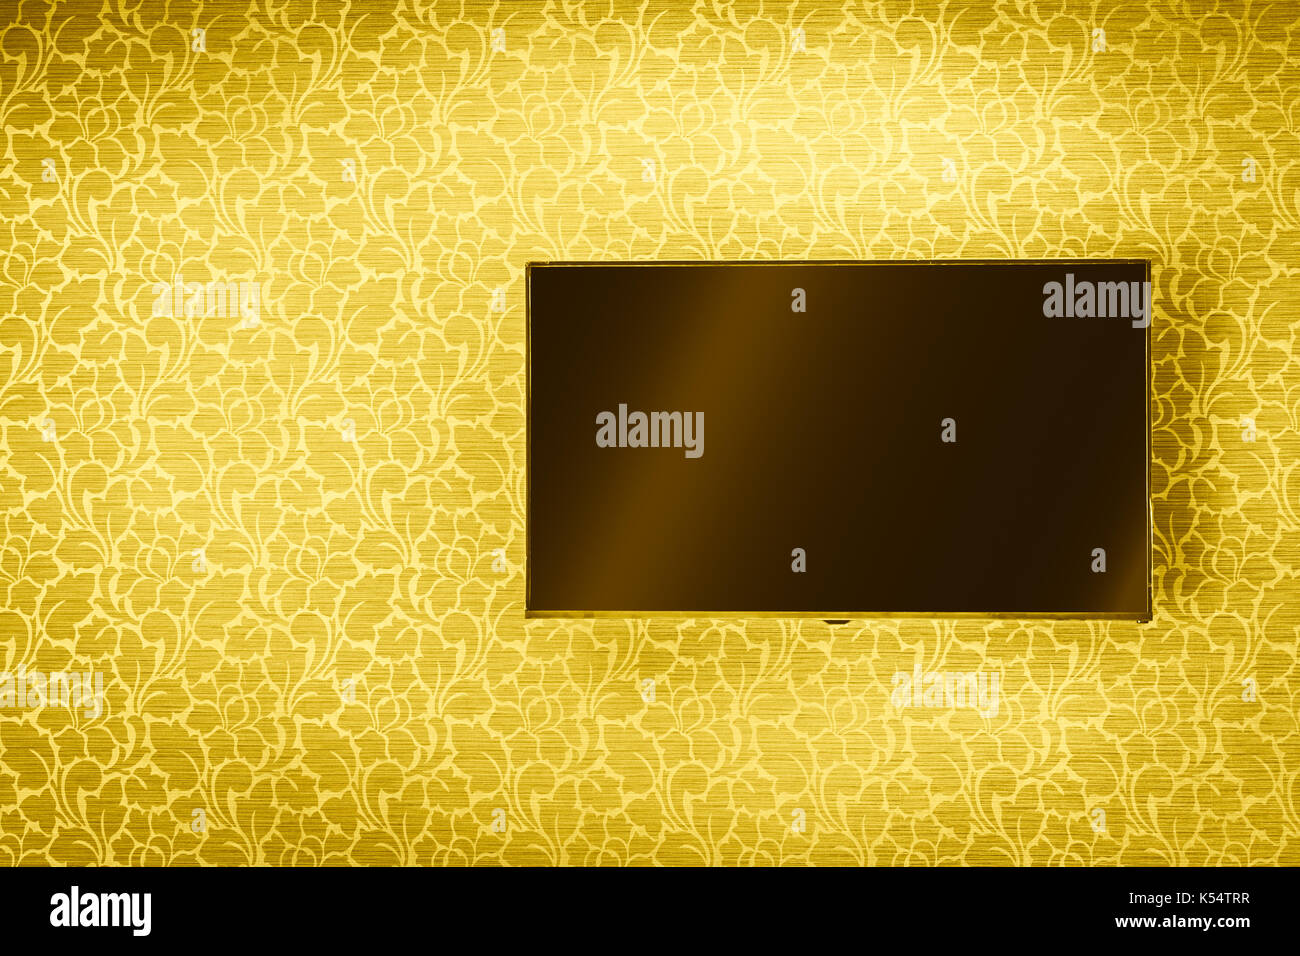 LCD TV Panel hanging on luxury golden wall background Stock Photo ...